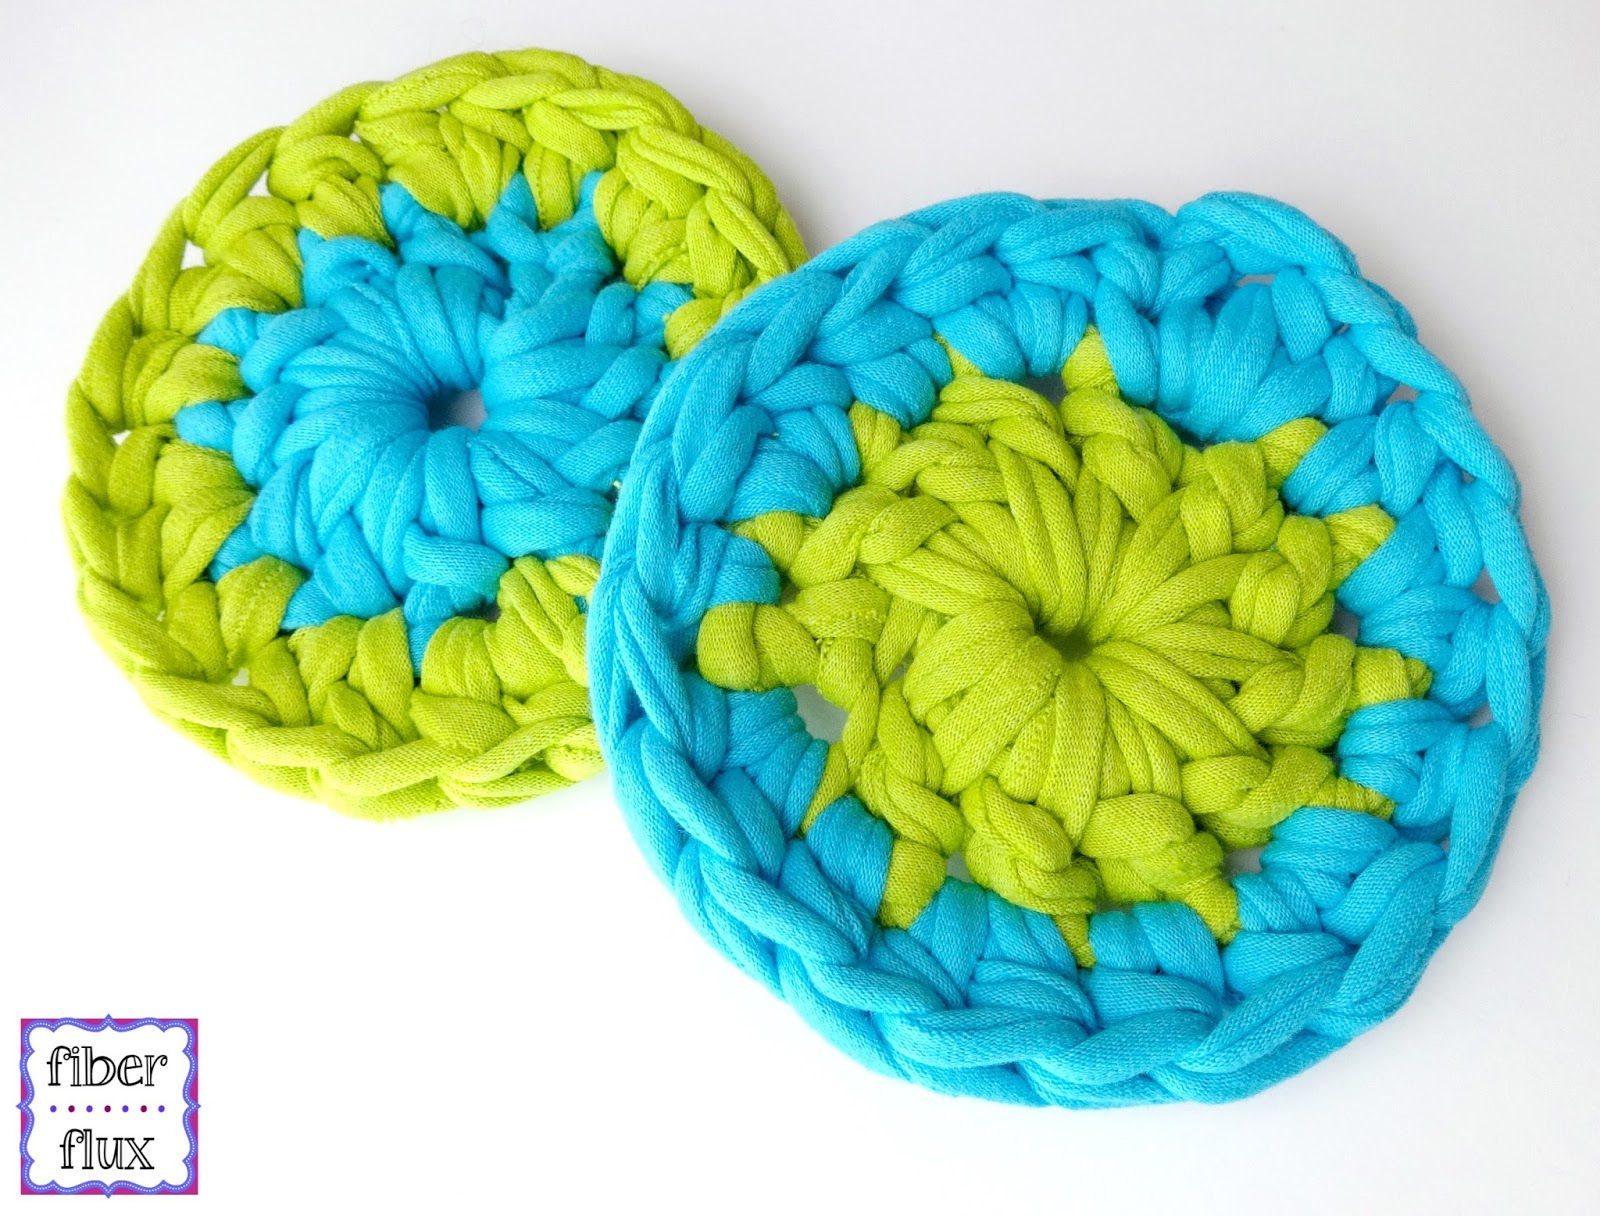 Crochet Patterns For T Shirt Yarn : Fiber Flux: Free Crochet Pattern...T-Shirt Yarn Coasters!